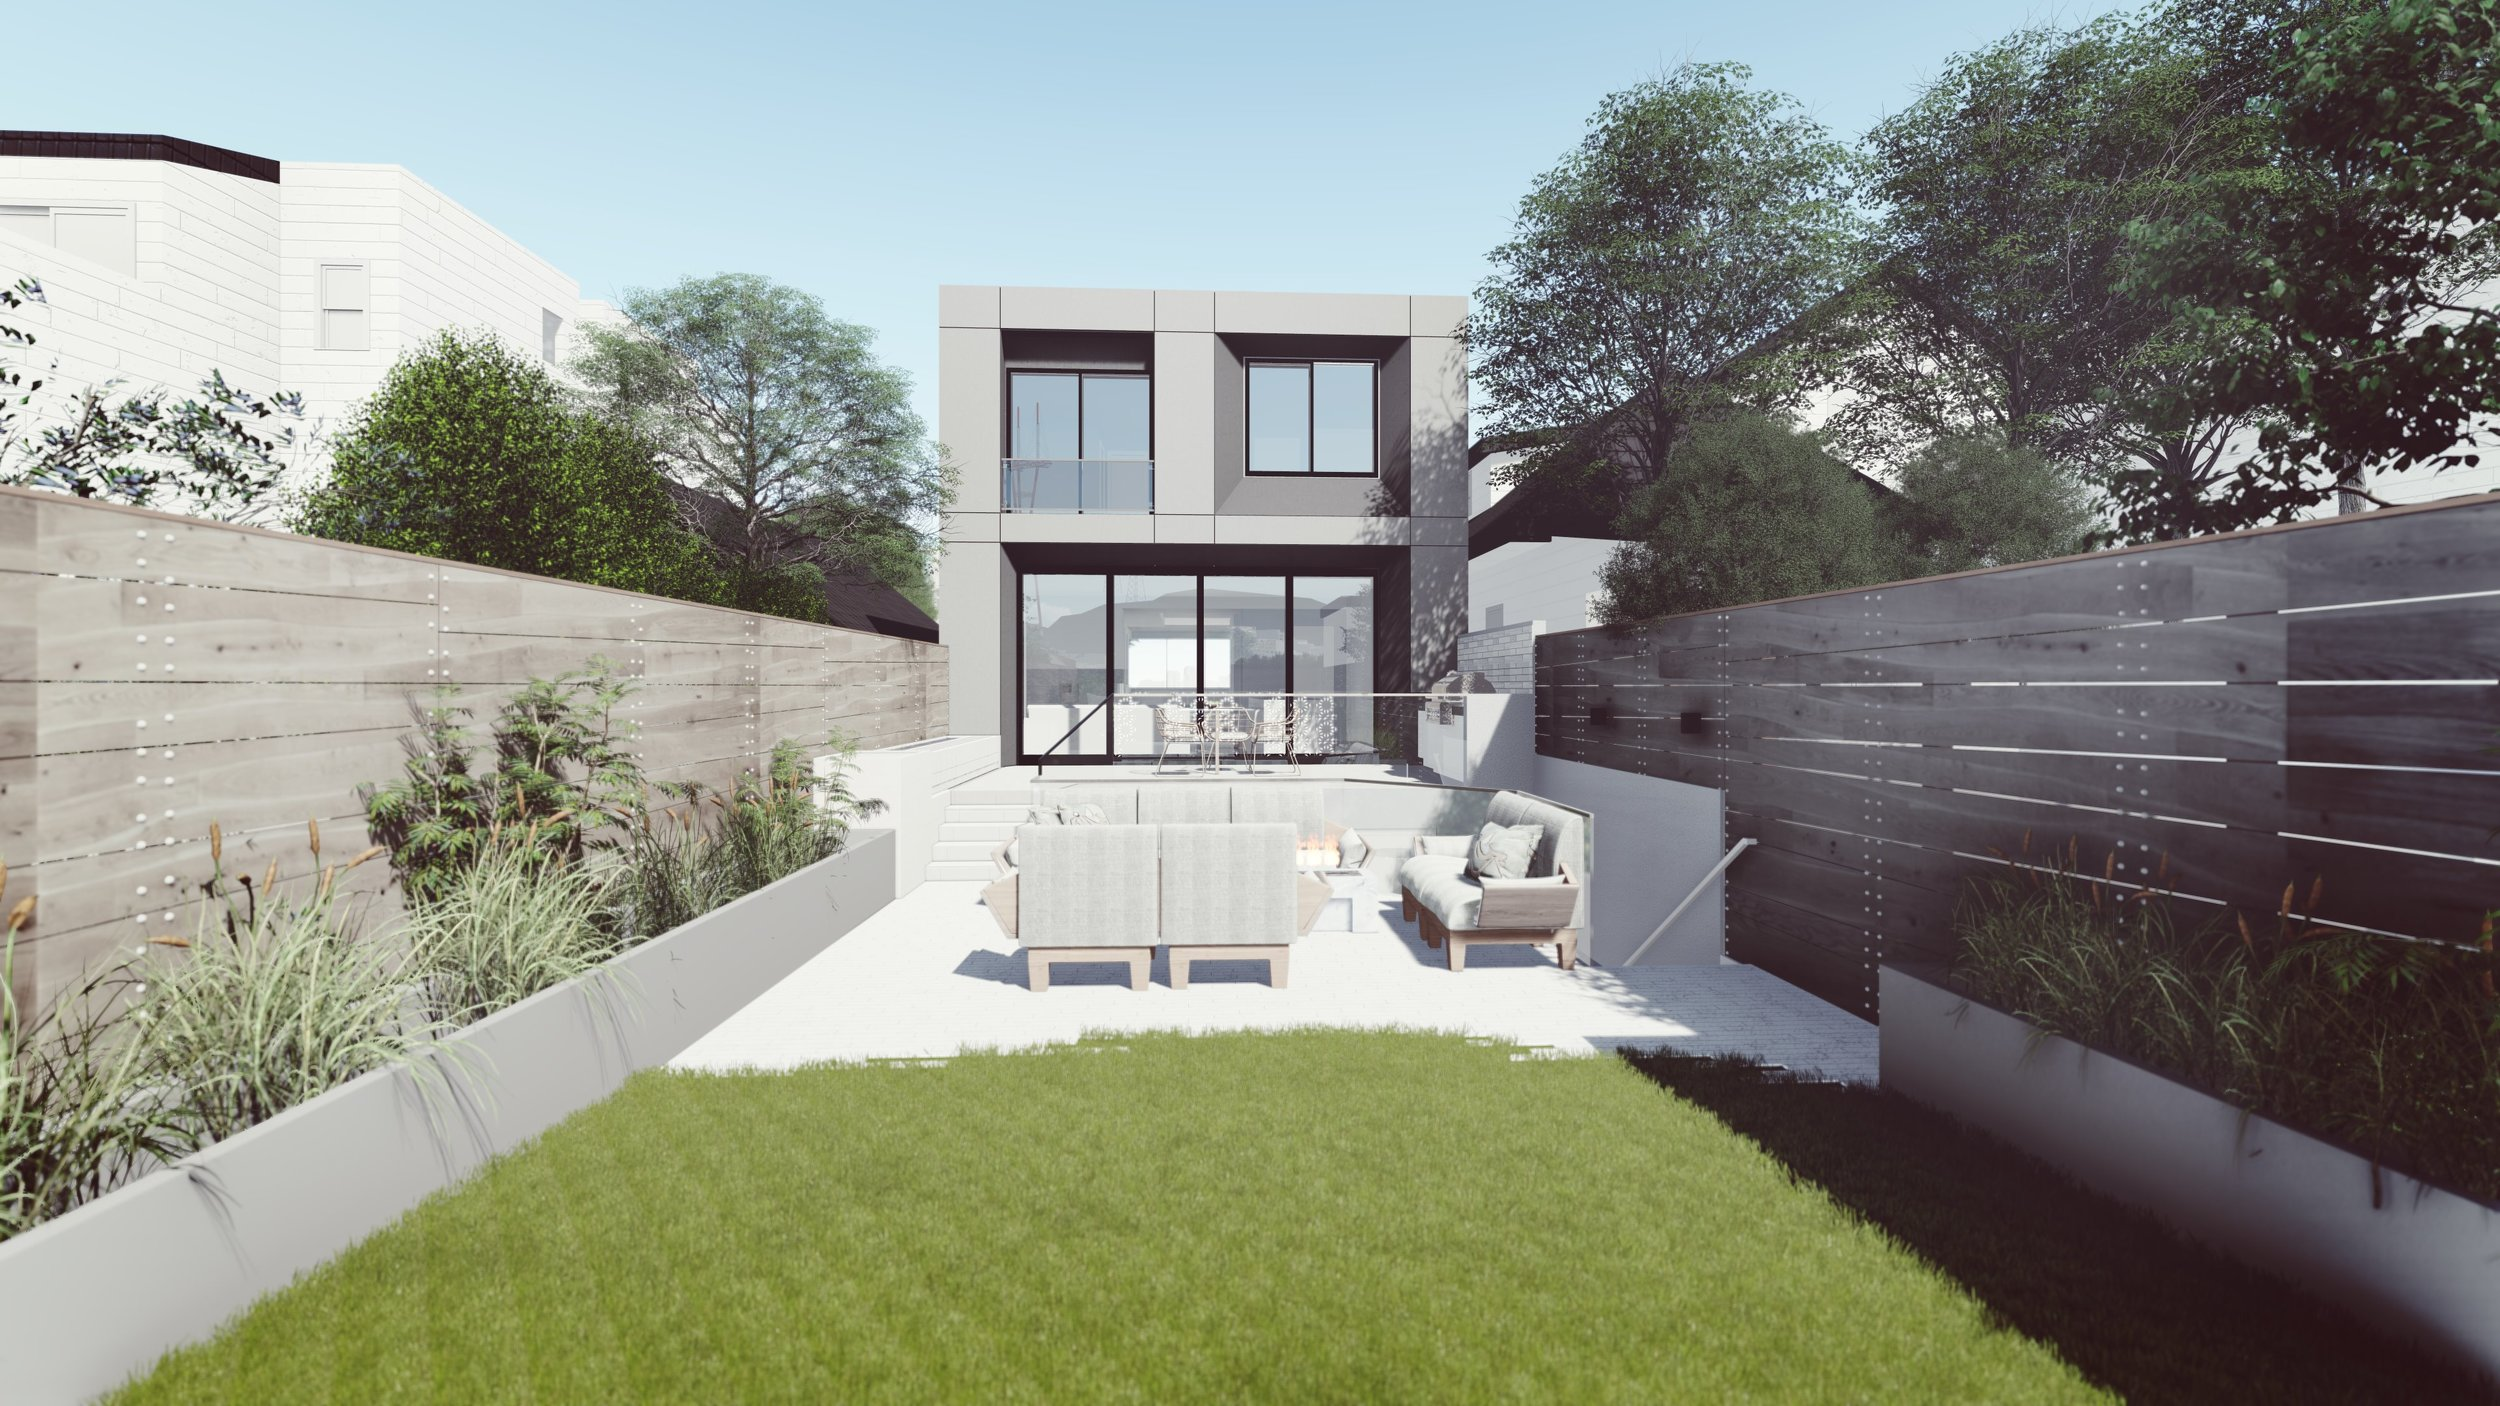 428 Collinwood Street - RENDERS - REAR_YARD_6_080917.jpg